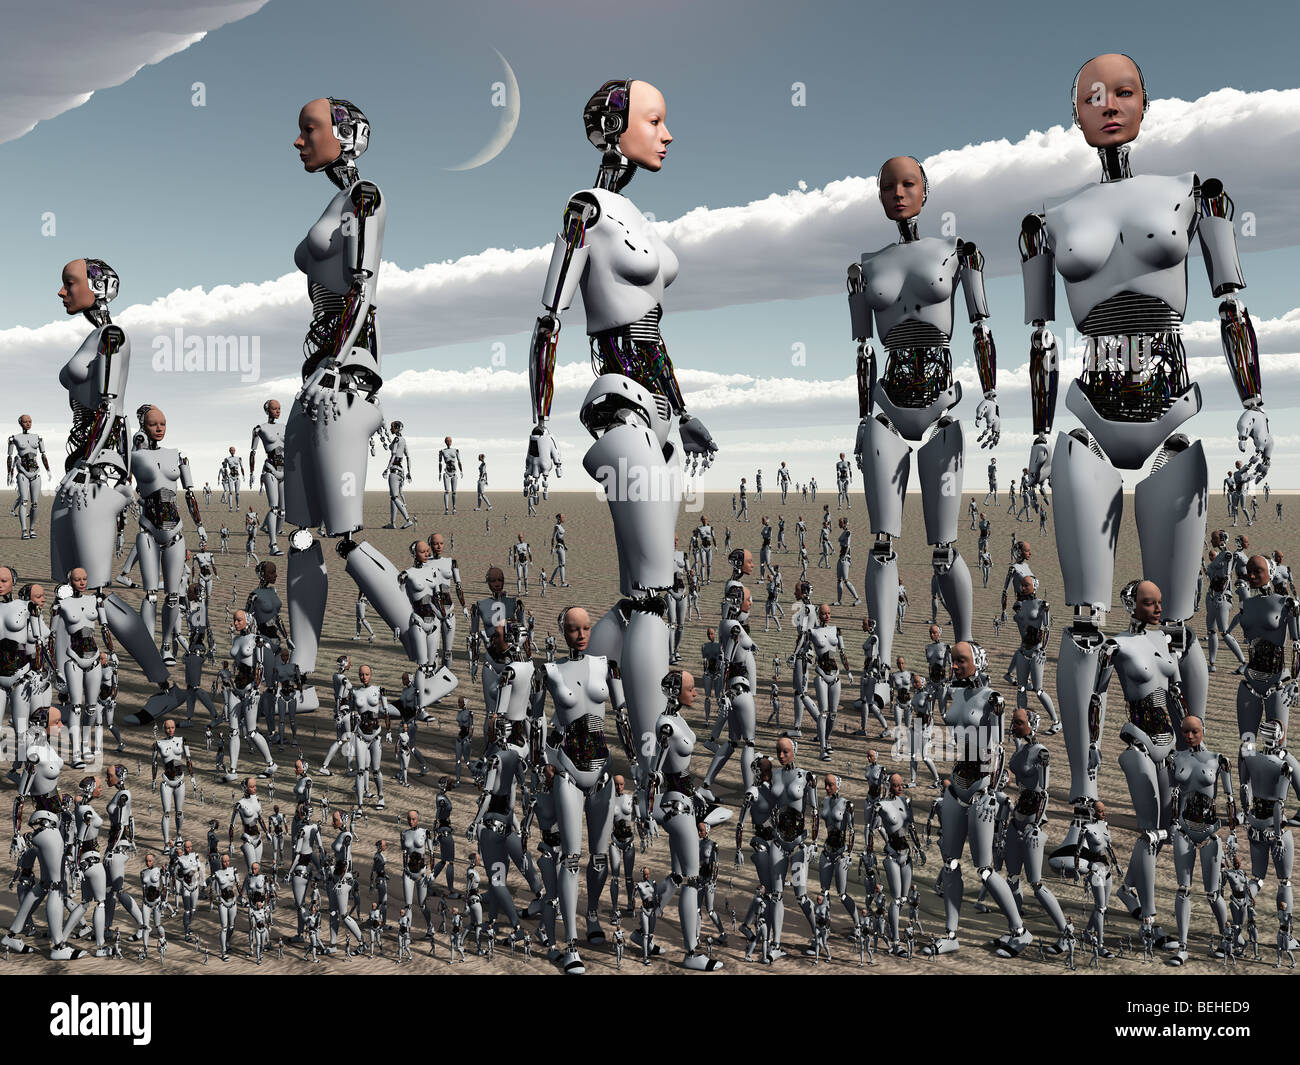 Over Crowding A 3D Conceptual Image - Stock Image